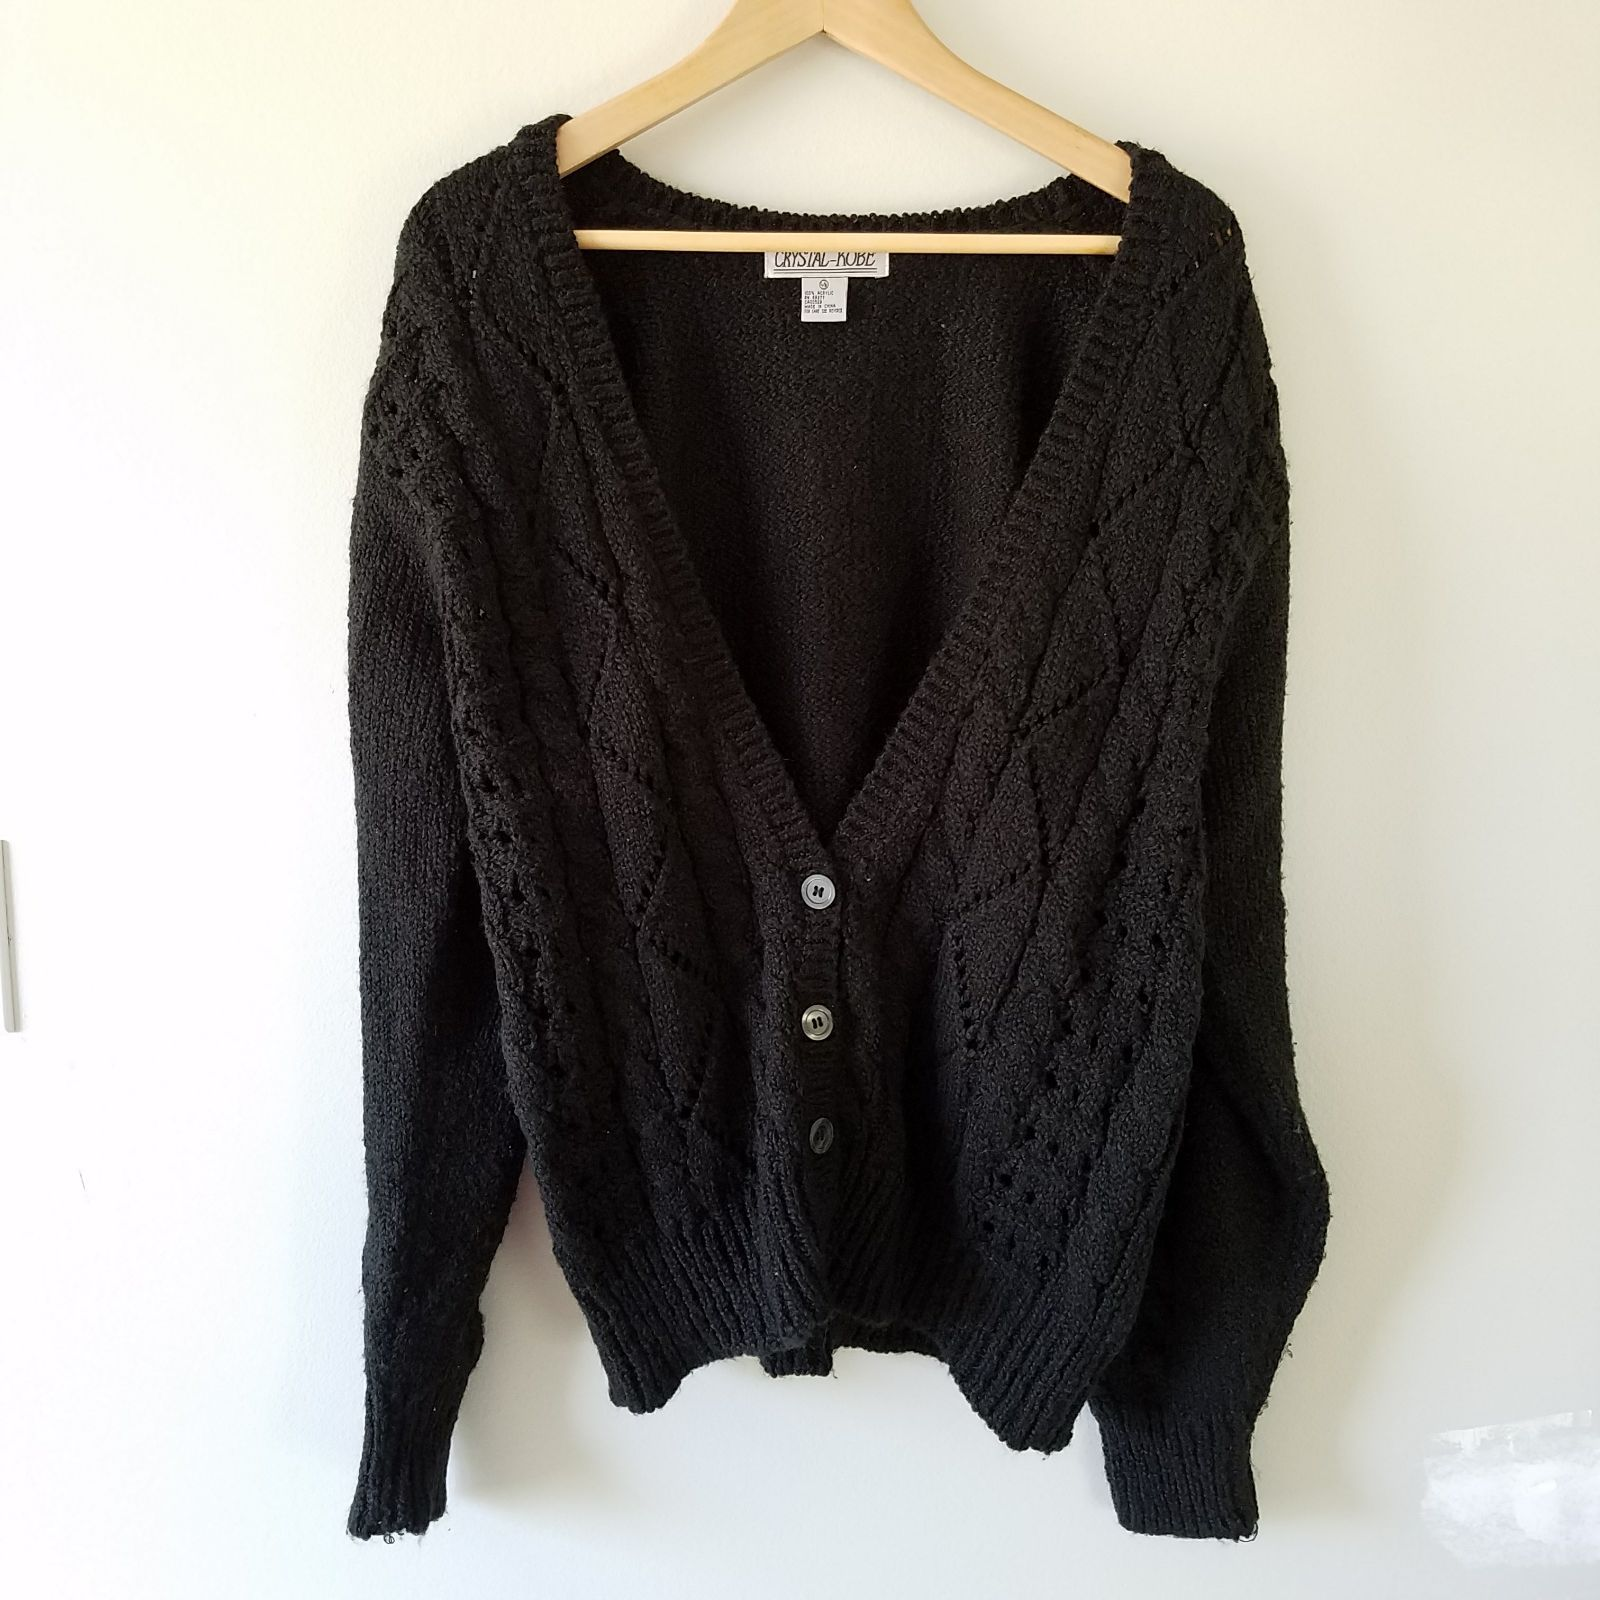 Black chunky cardigan sweater - Mercari: BUY & SELL THINGS YOU LOVE